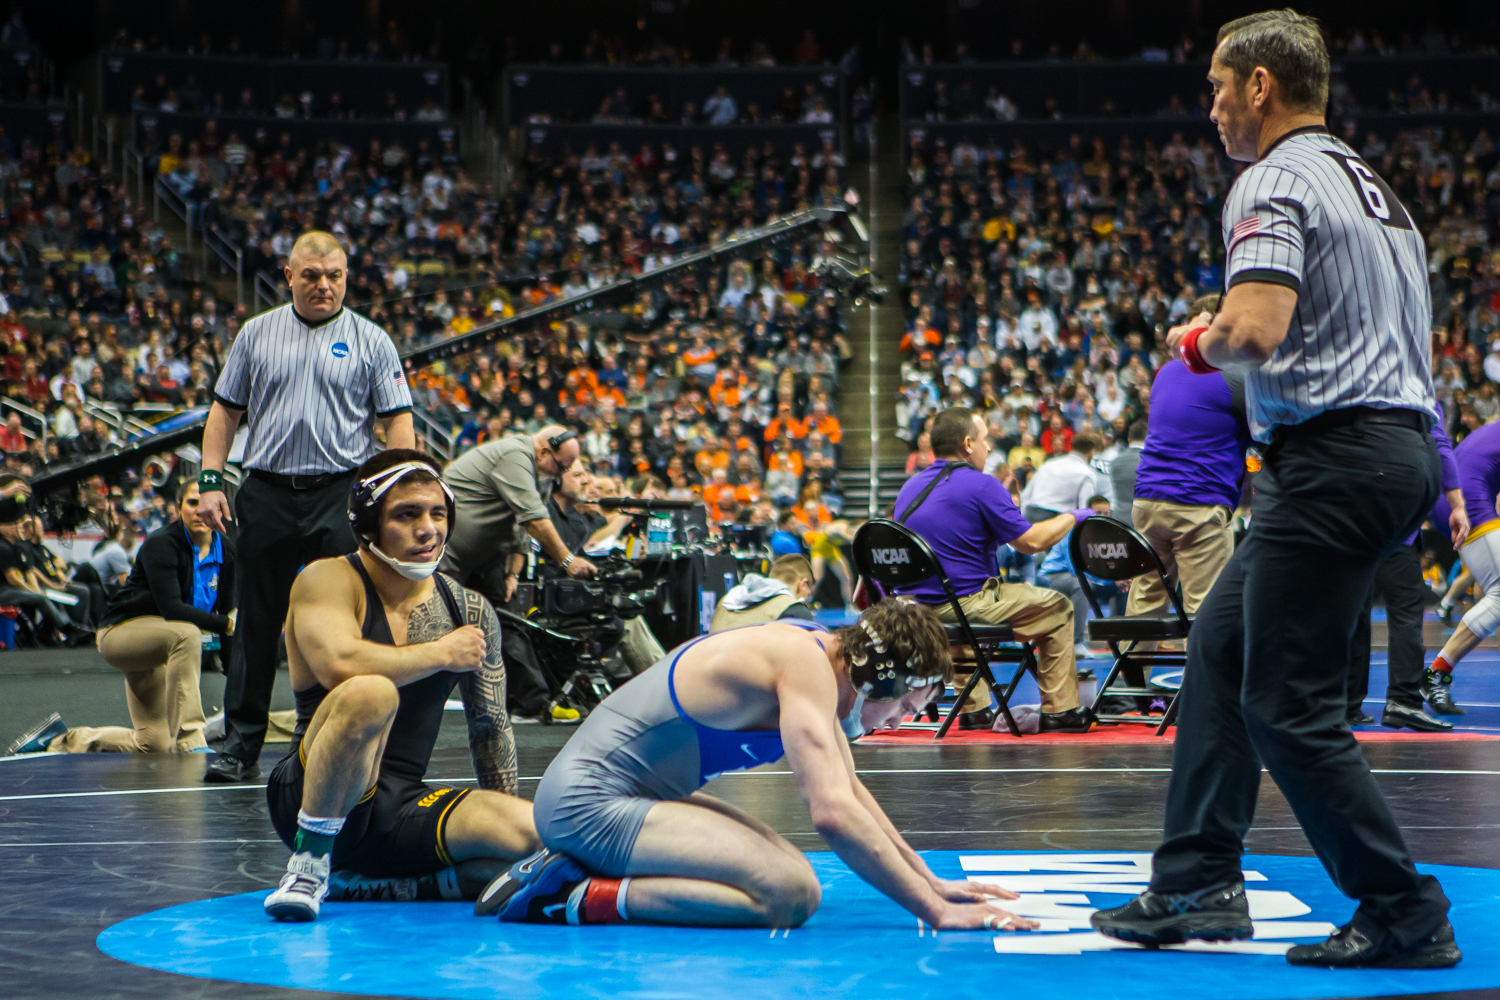 Iowa%E2%80%99s+149-pound+Pat+Lugo+wrestles+Duke%E2%80%99s+Mitch+Finesilver+during+the+fourth+session+of+the+2019+NCAA+D1+Wrestling+Championships+at+PPG+Paints+Arena+in+Pittsburgh%2C+PA+on+Friday%2C+March+22%2C+2019.+Finesilver+won+by+decision%2C+6-3.